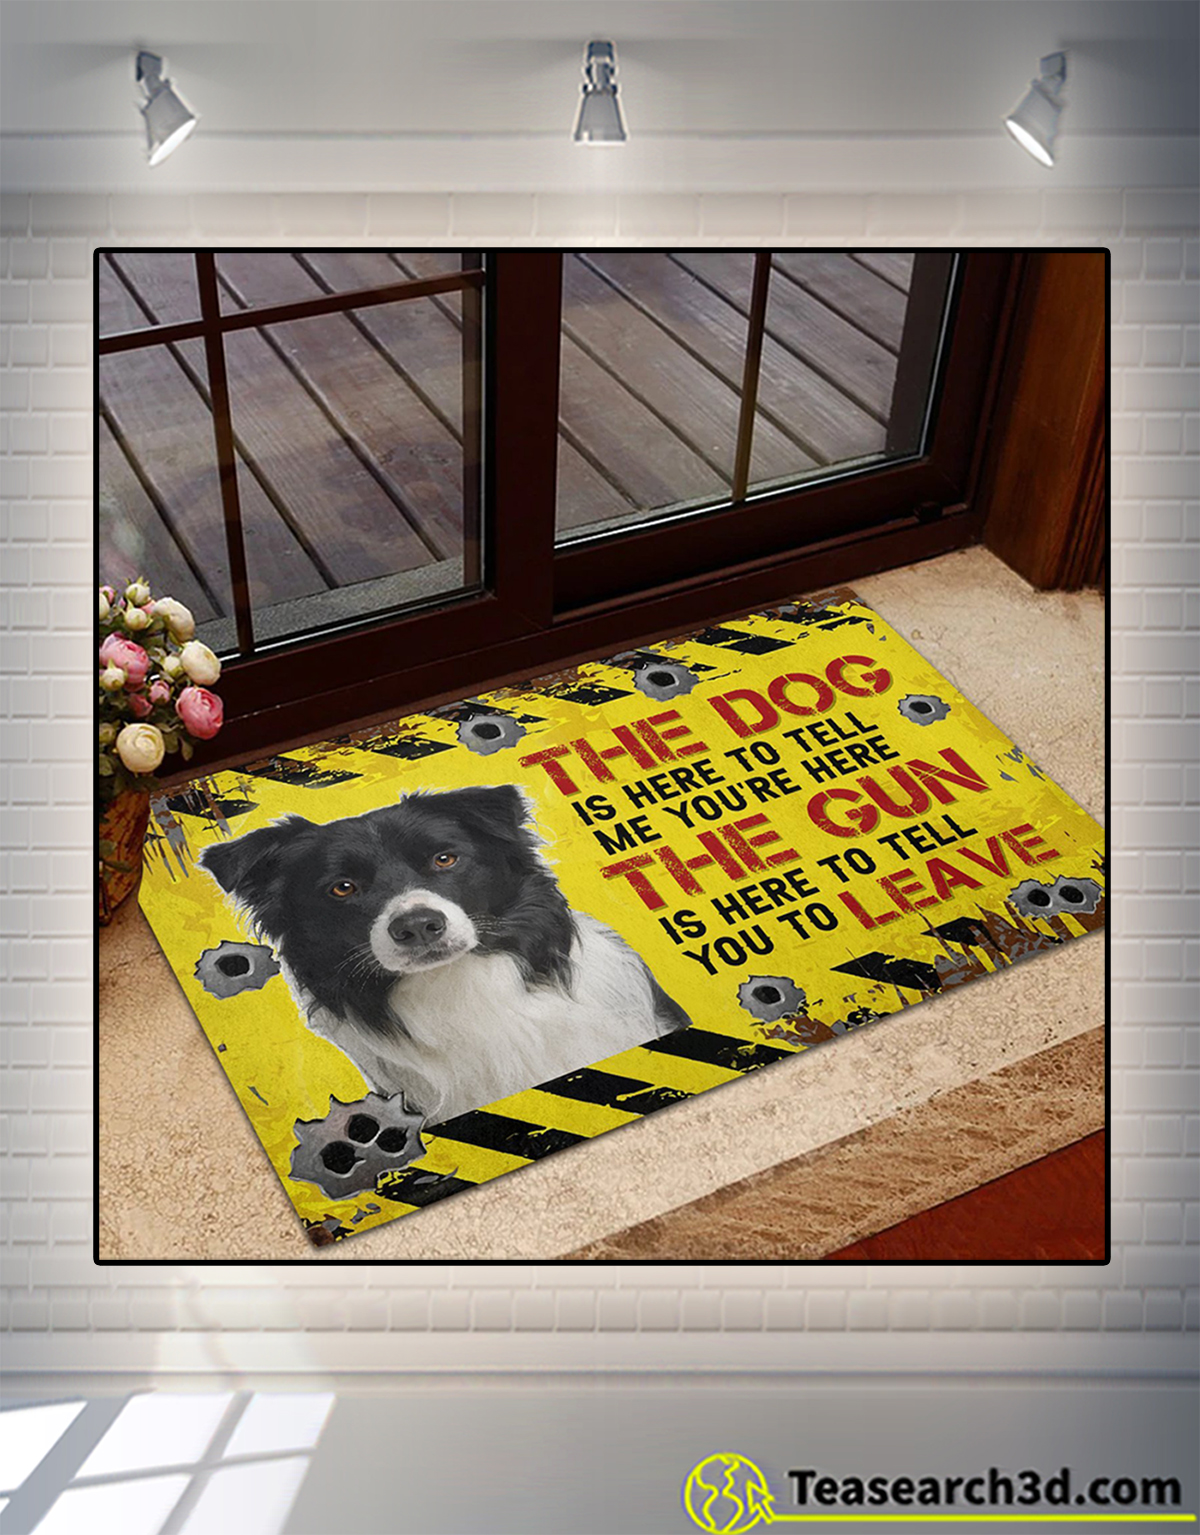 Border Collie The dog is here to tell me you're here doormat